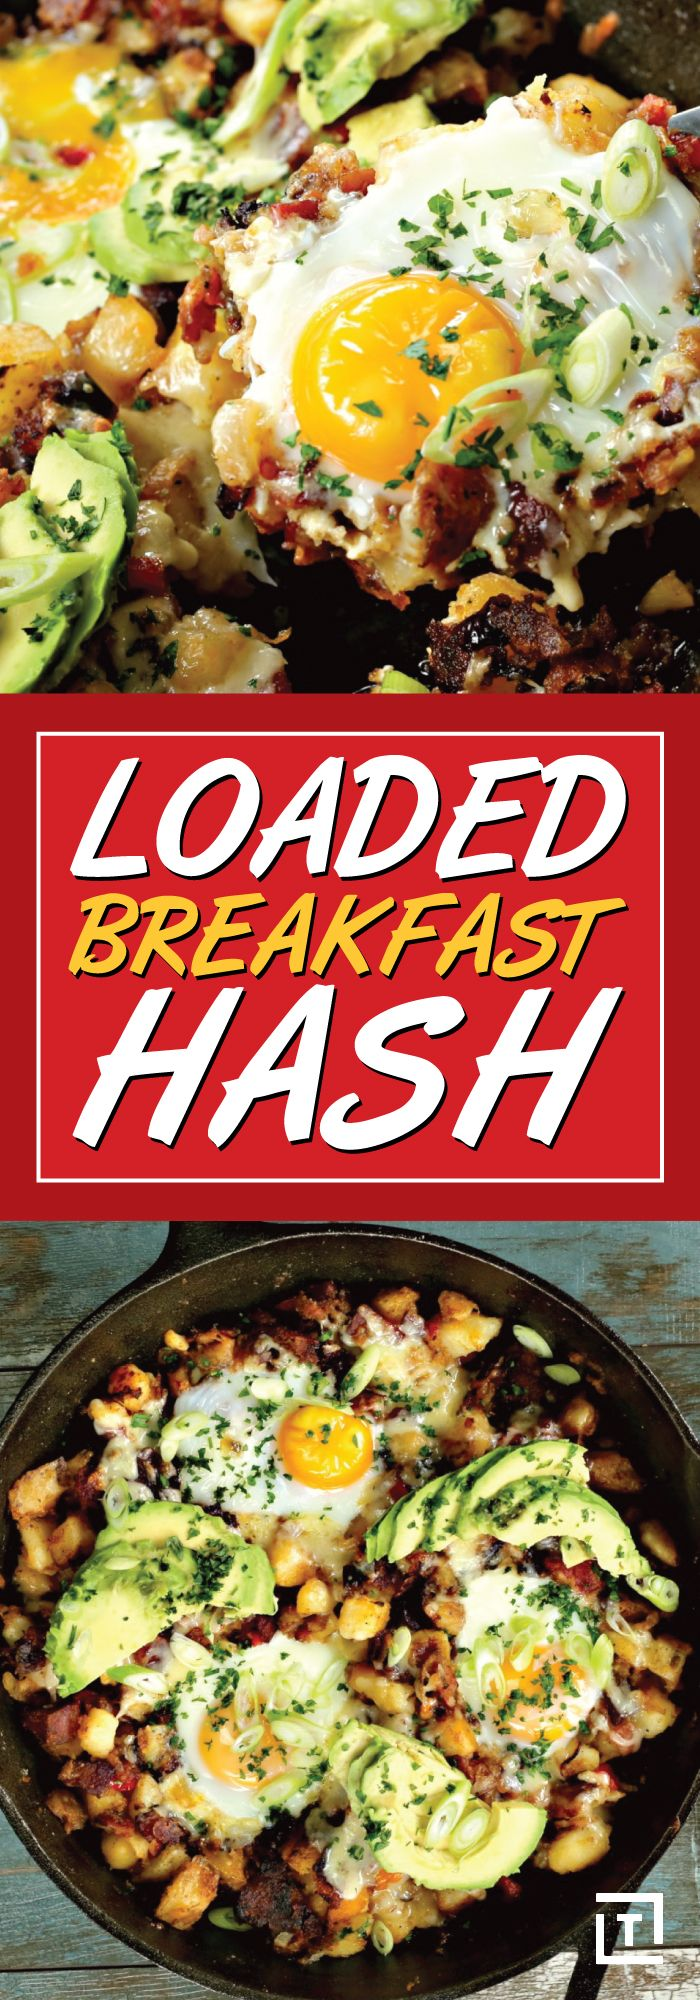 Twisted makes the best-looking breakfast hash we ever did see. This thing is all…